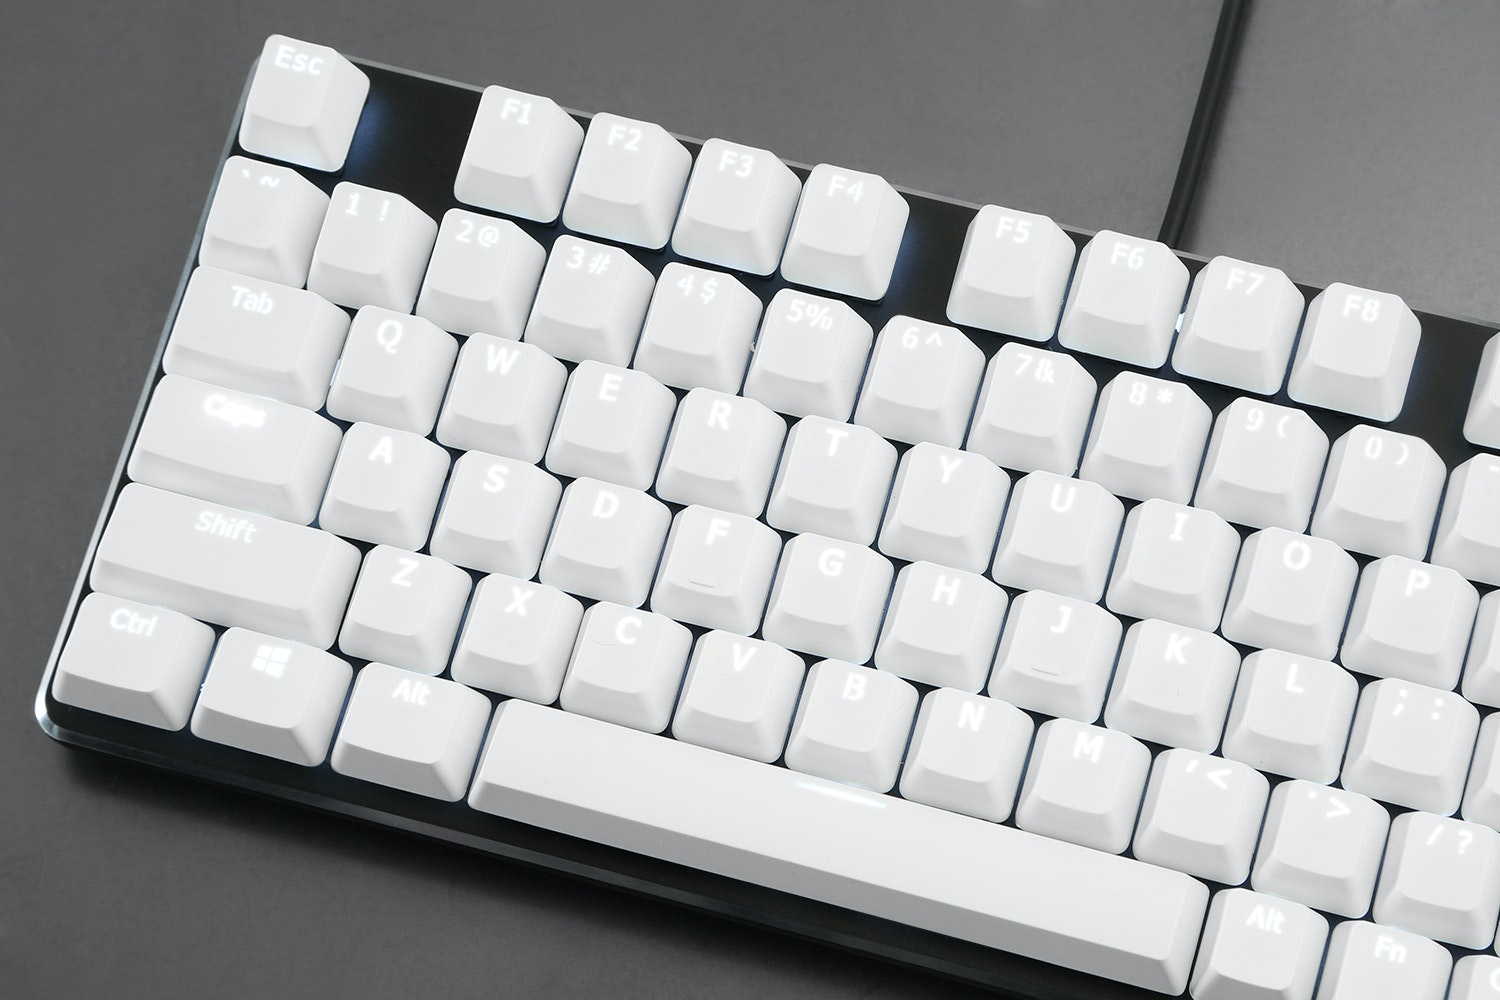 Magicforce 82-Key Mechanical Keyboard